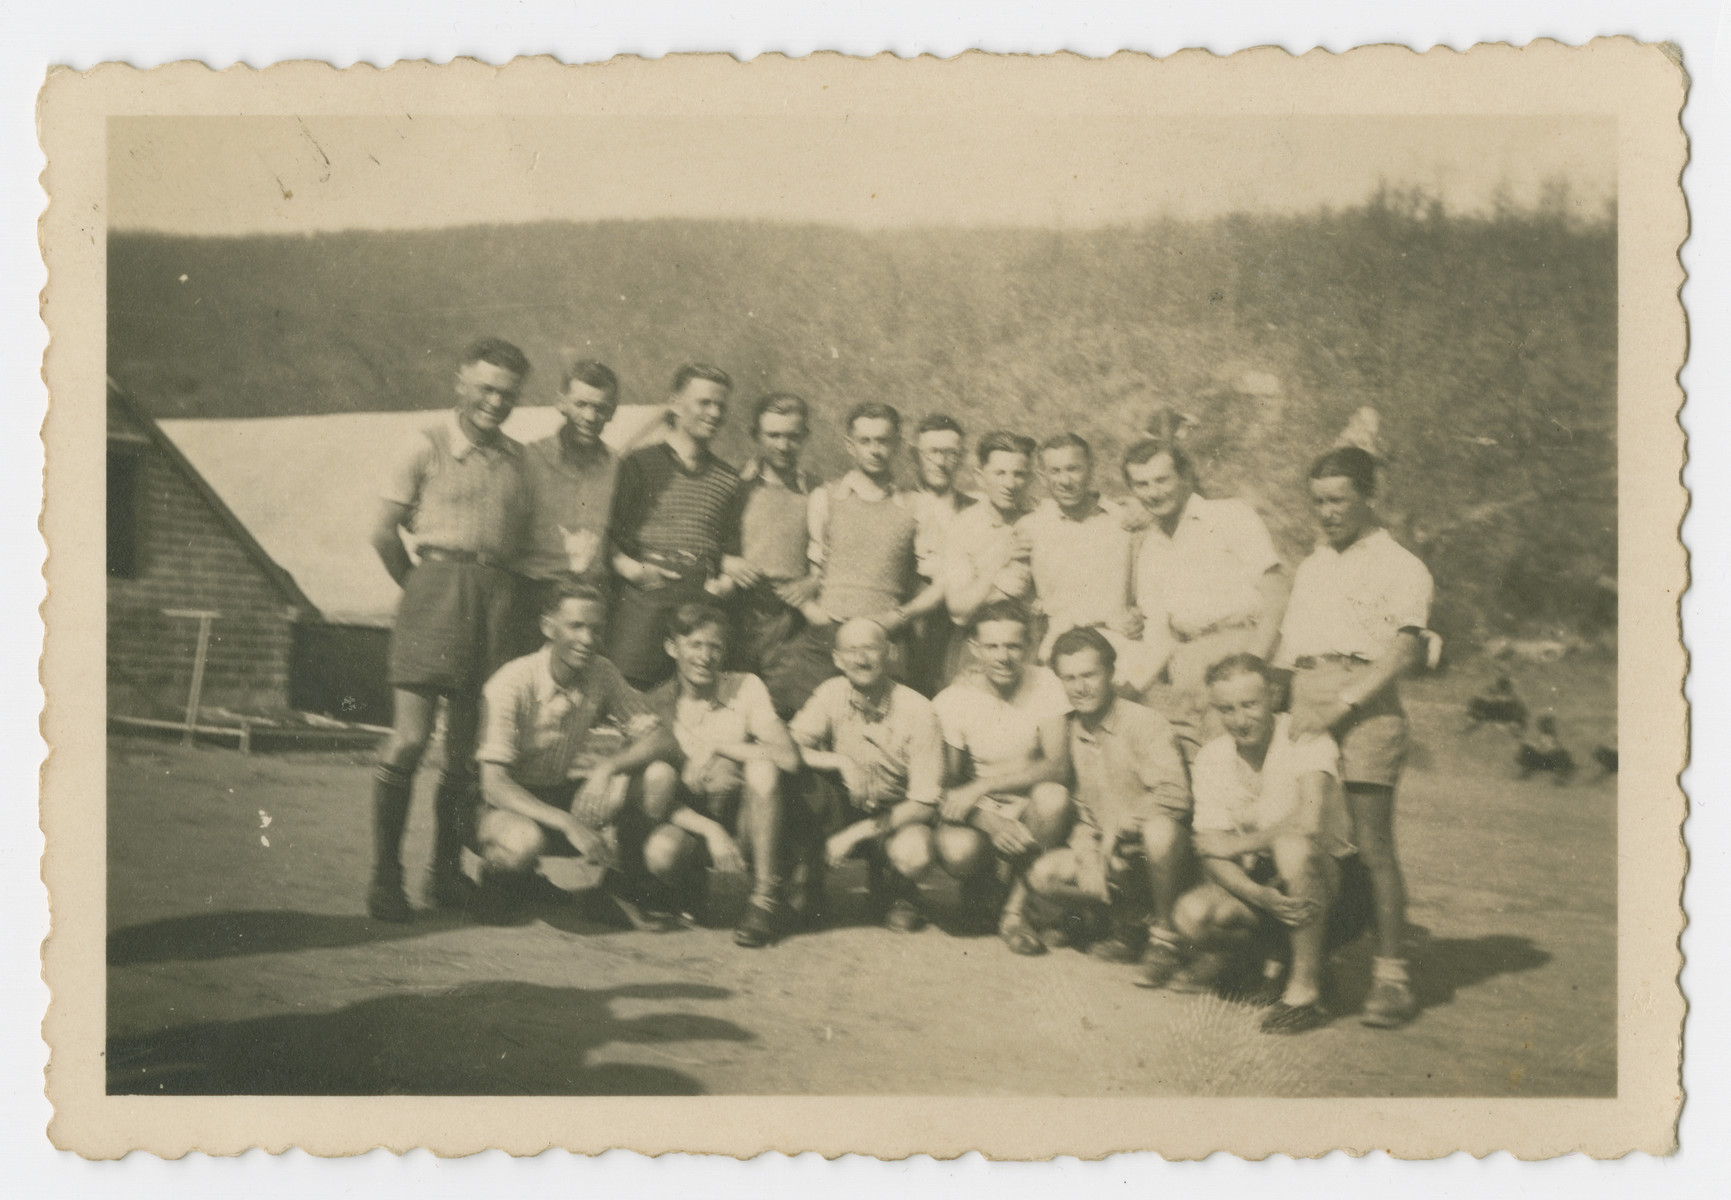 Group portrait of internees in a Bulgarian labor camp.